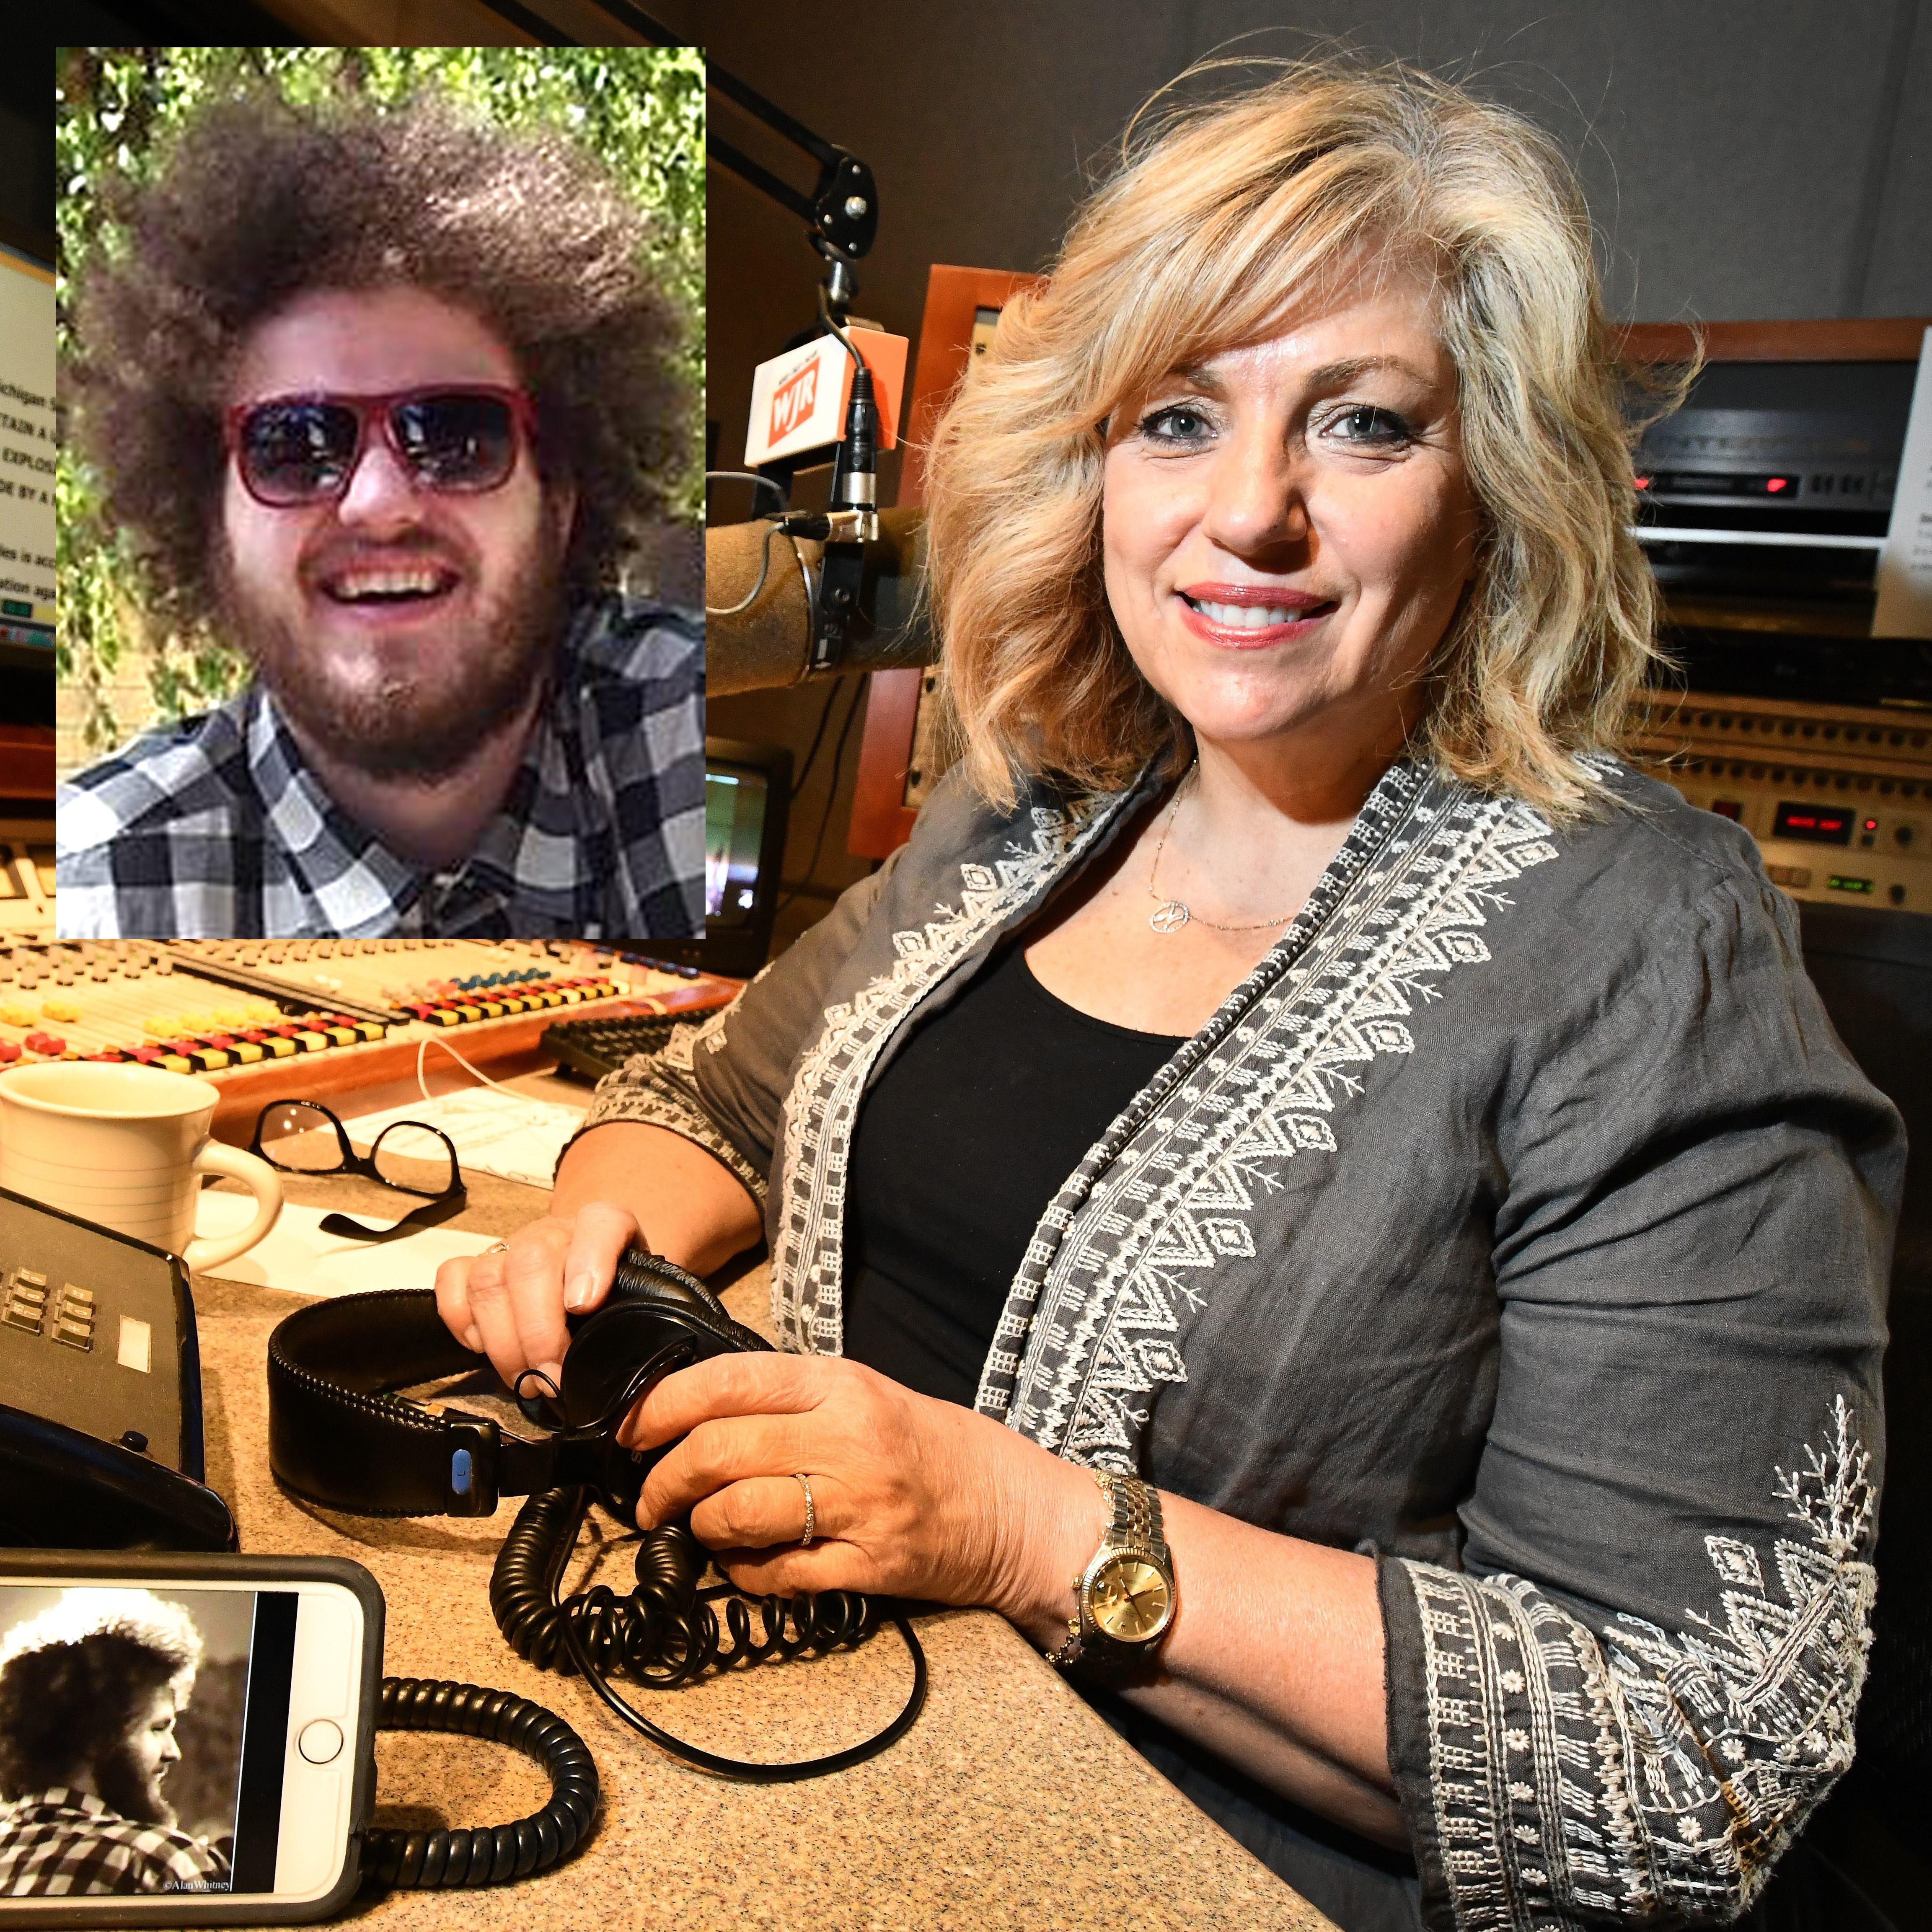 WJR-AM newscaster Marie Osborne lost her 28-year old son John to a heart issue last year.